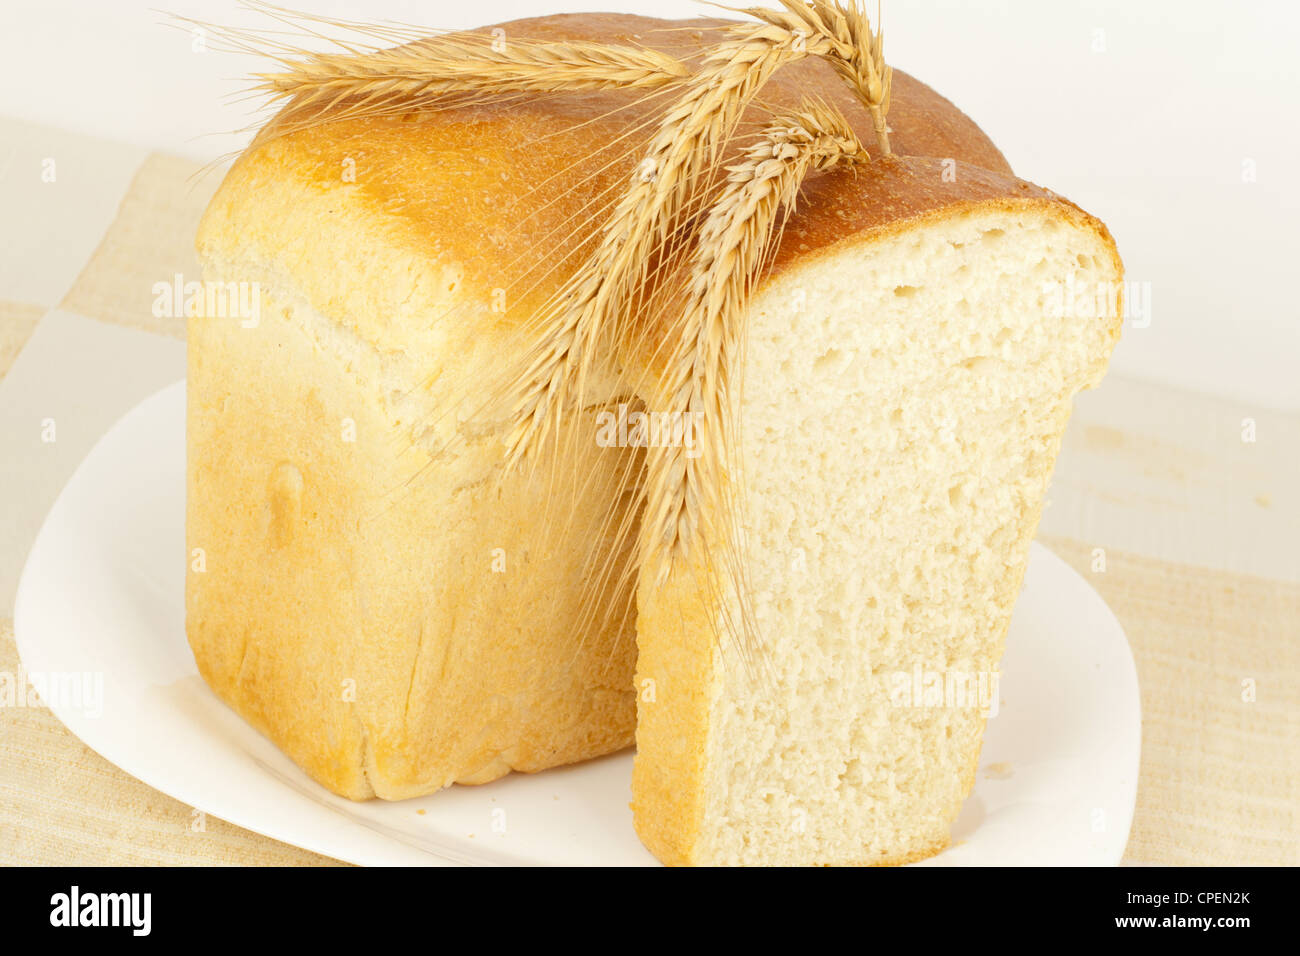 Bread baking tin home with ears closeup - Stock Image